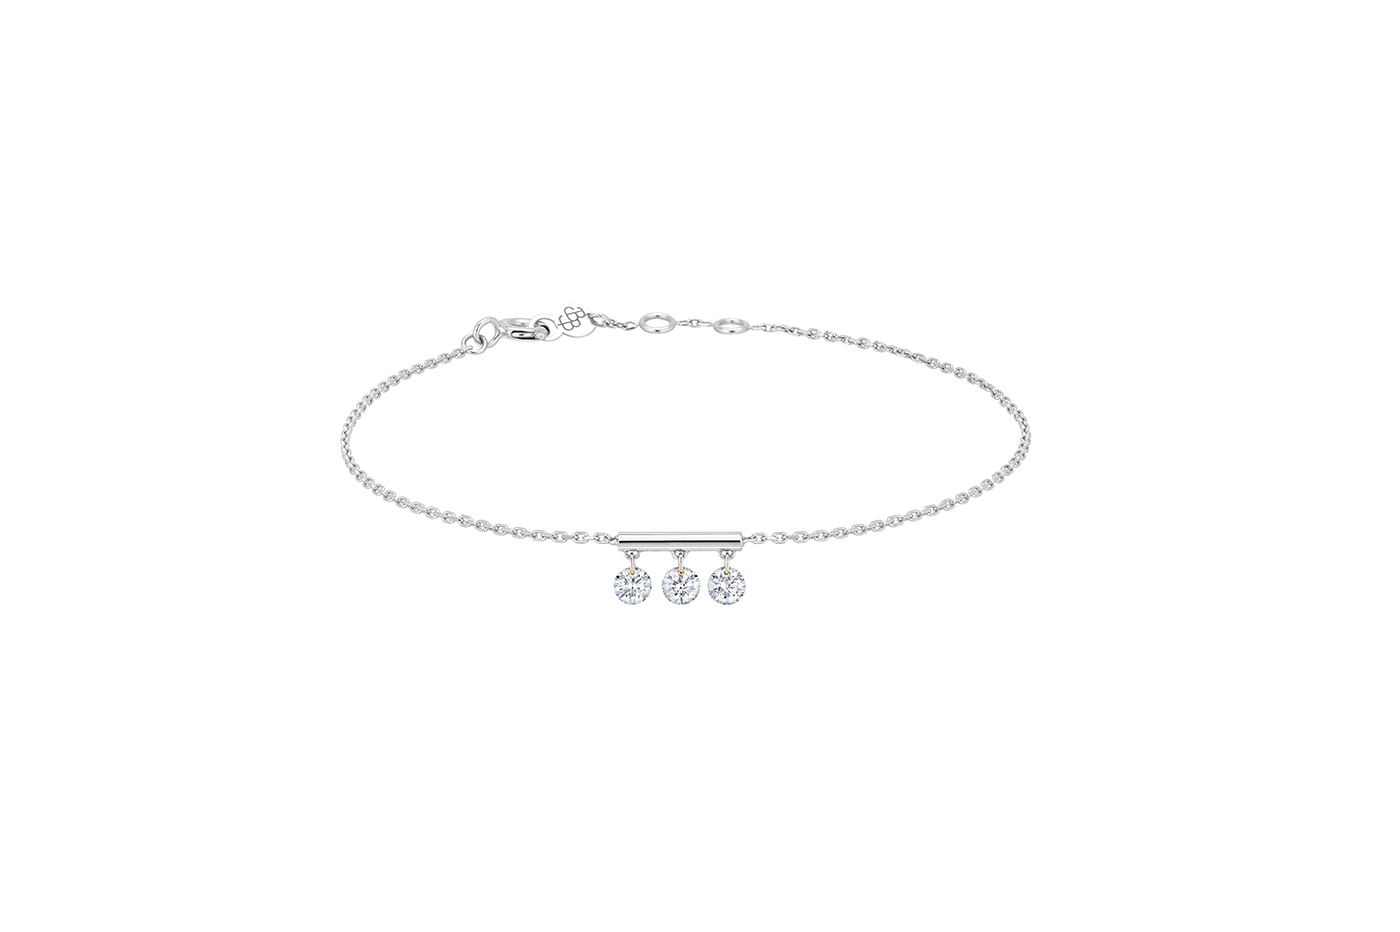 Bracelet Pampilles, 3 diamants, LA BRUNE ET LA BLONDE, or blanc